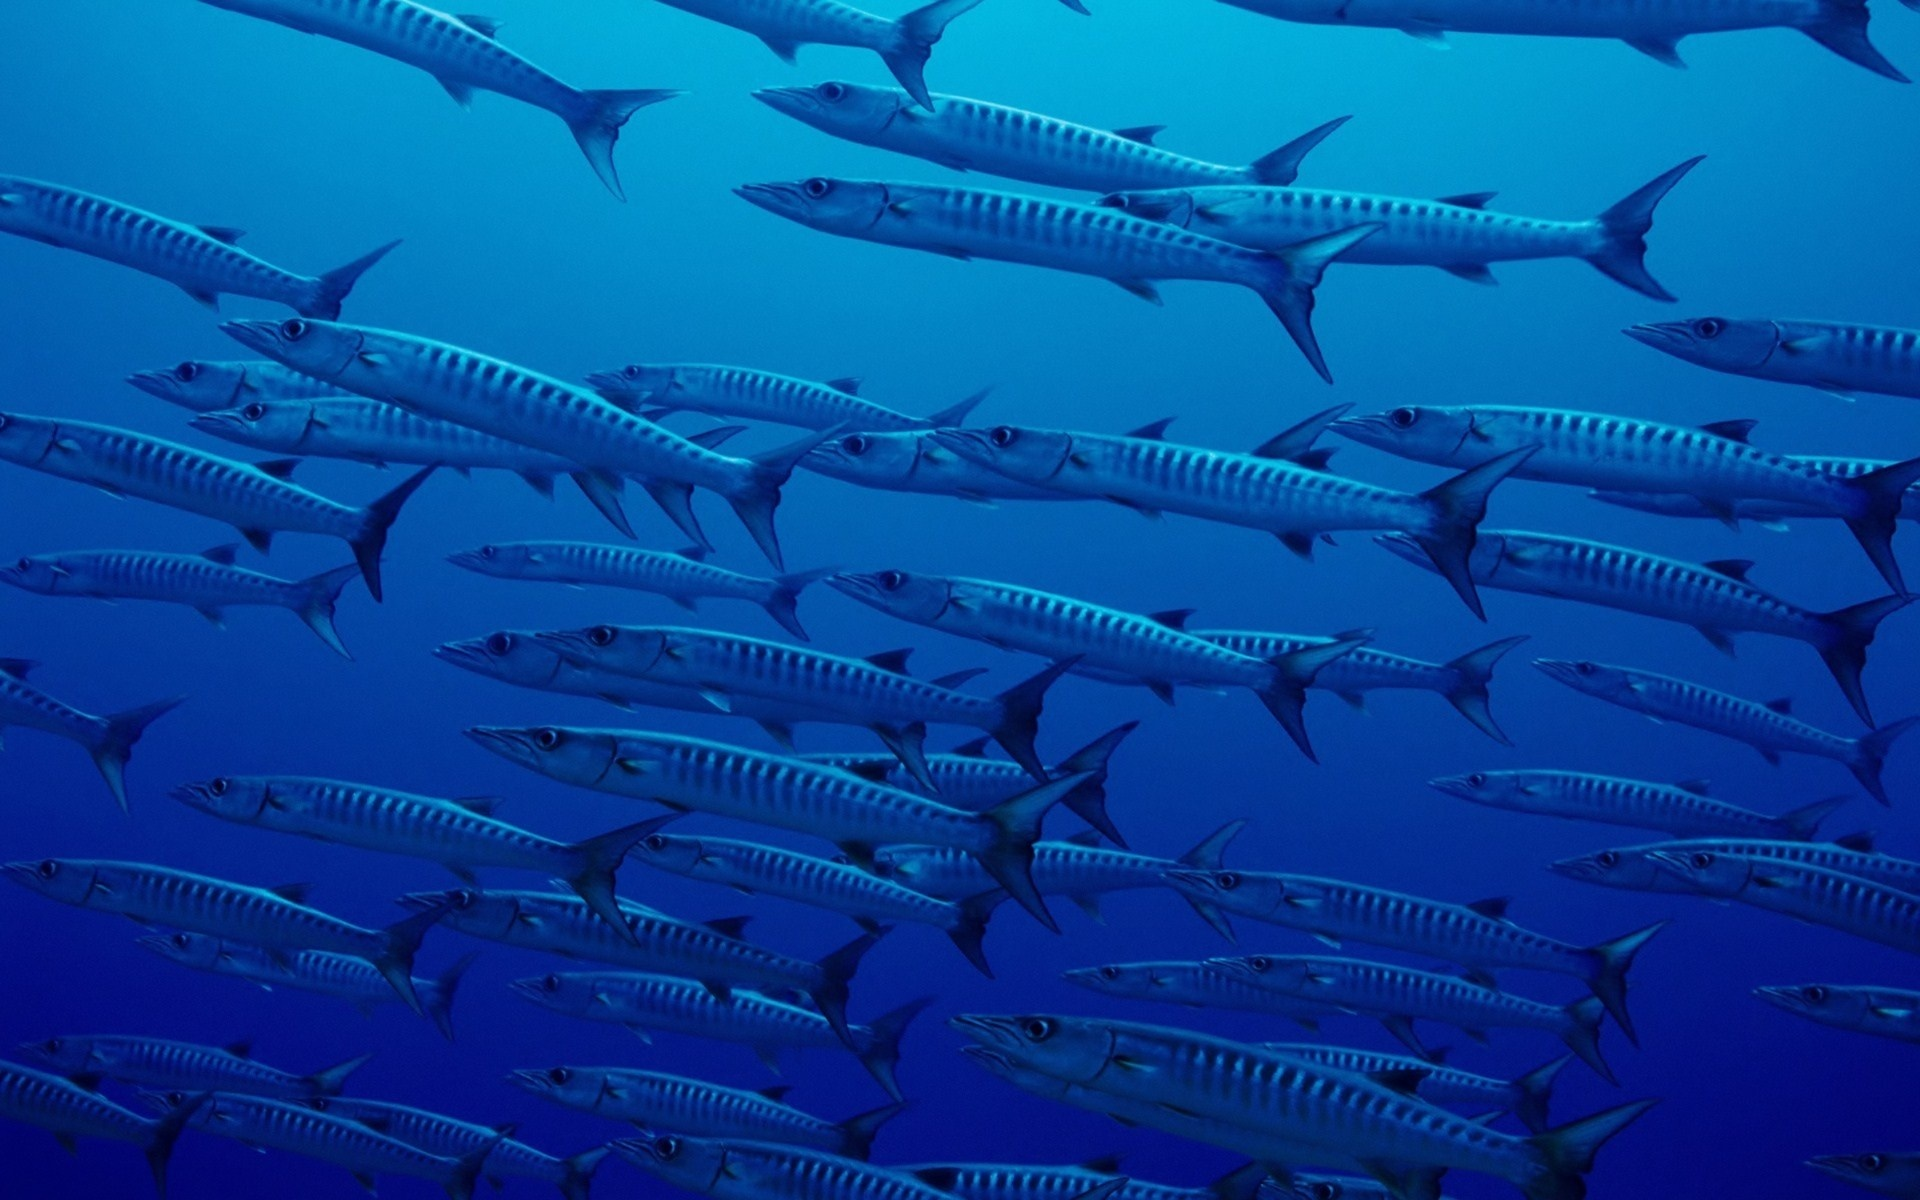 Wallpaper Beautiful Pictures The Ocean Photo Under Water Fish